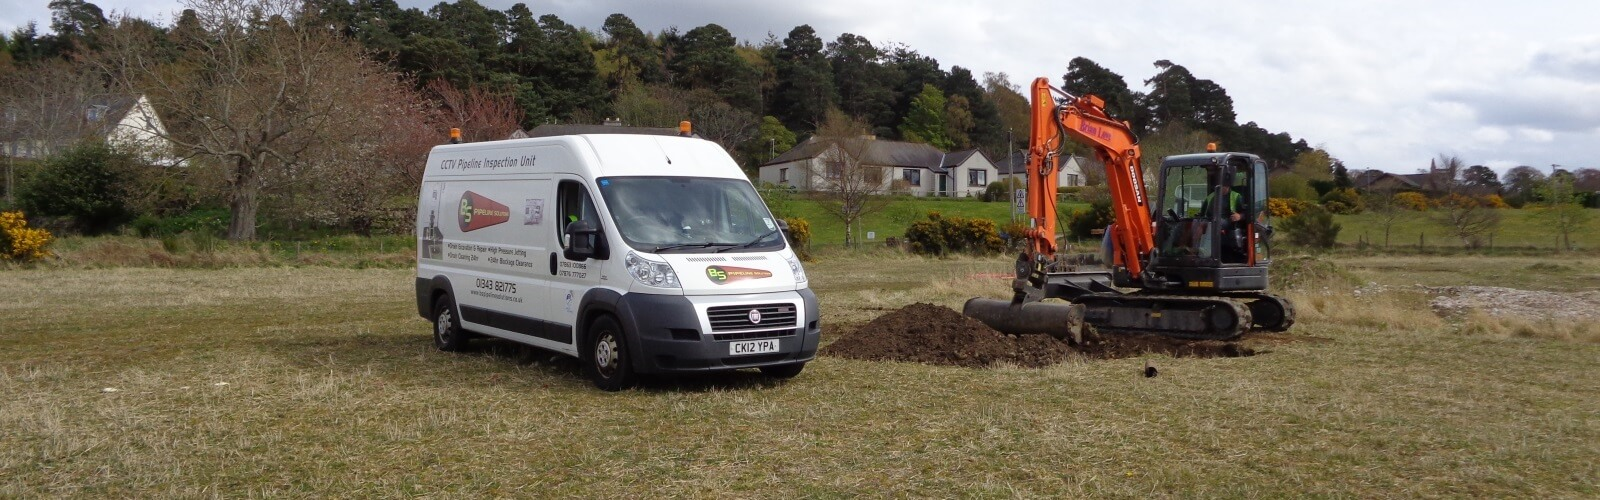 Drainage Services In Elgin